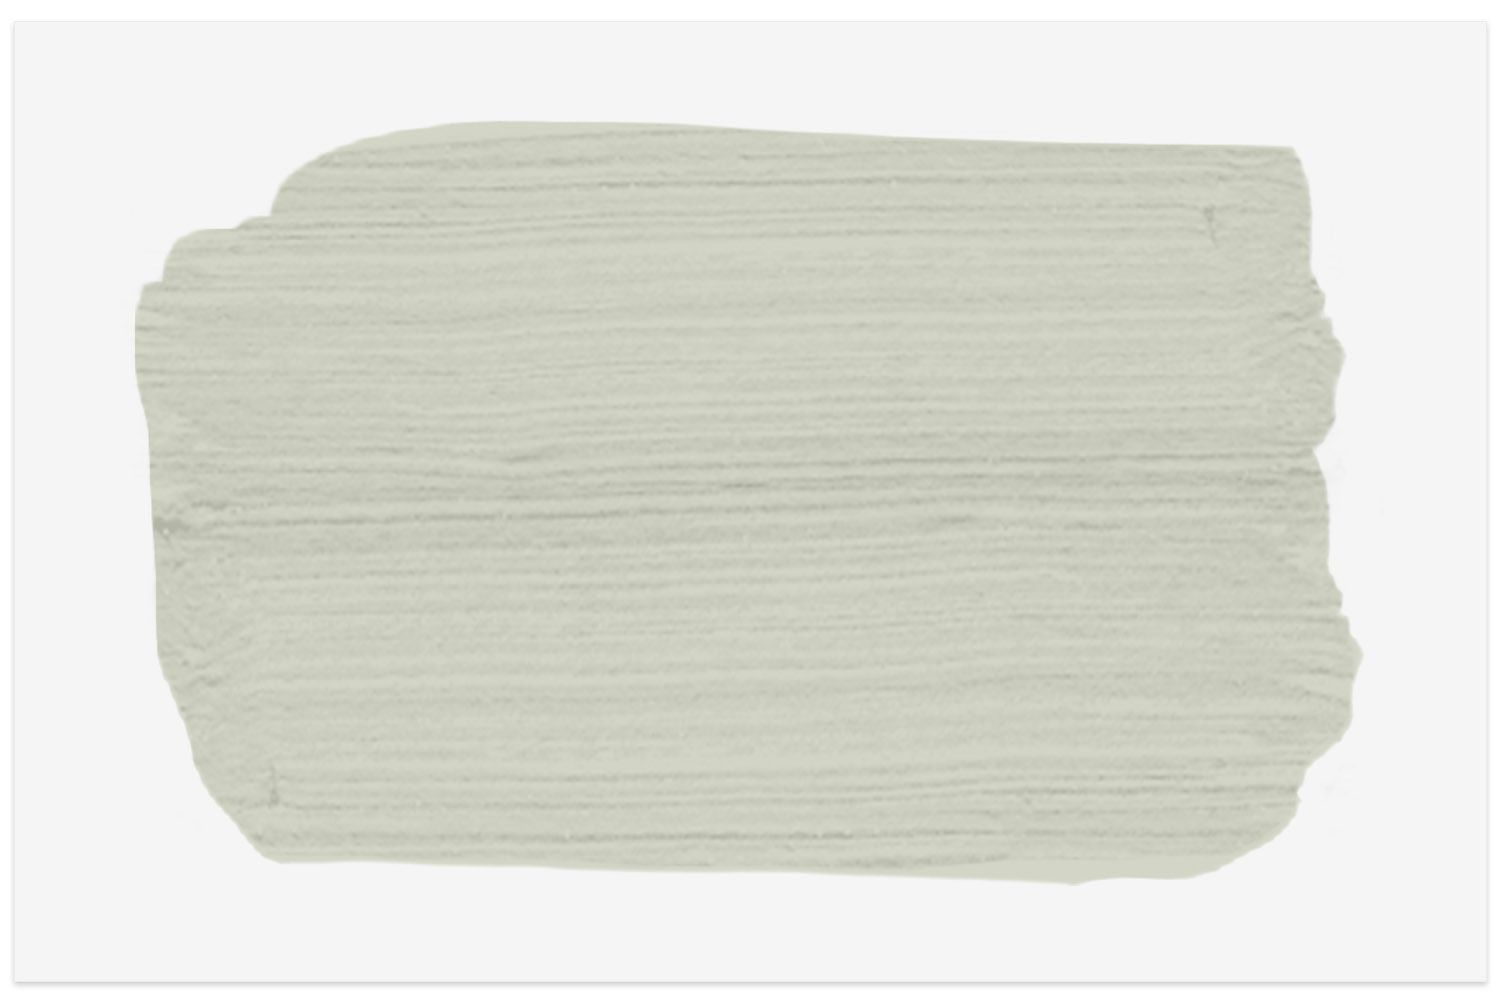 Filmy Green paint swatch from Sherwin-Williams